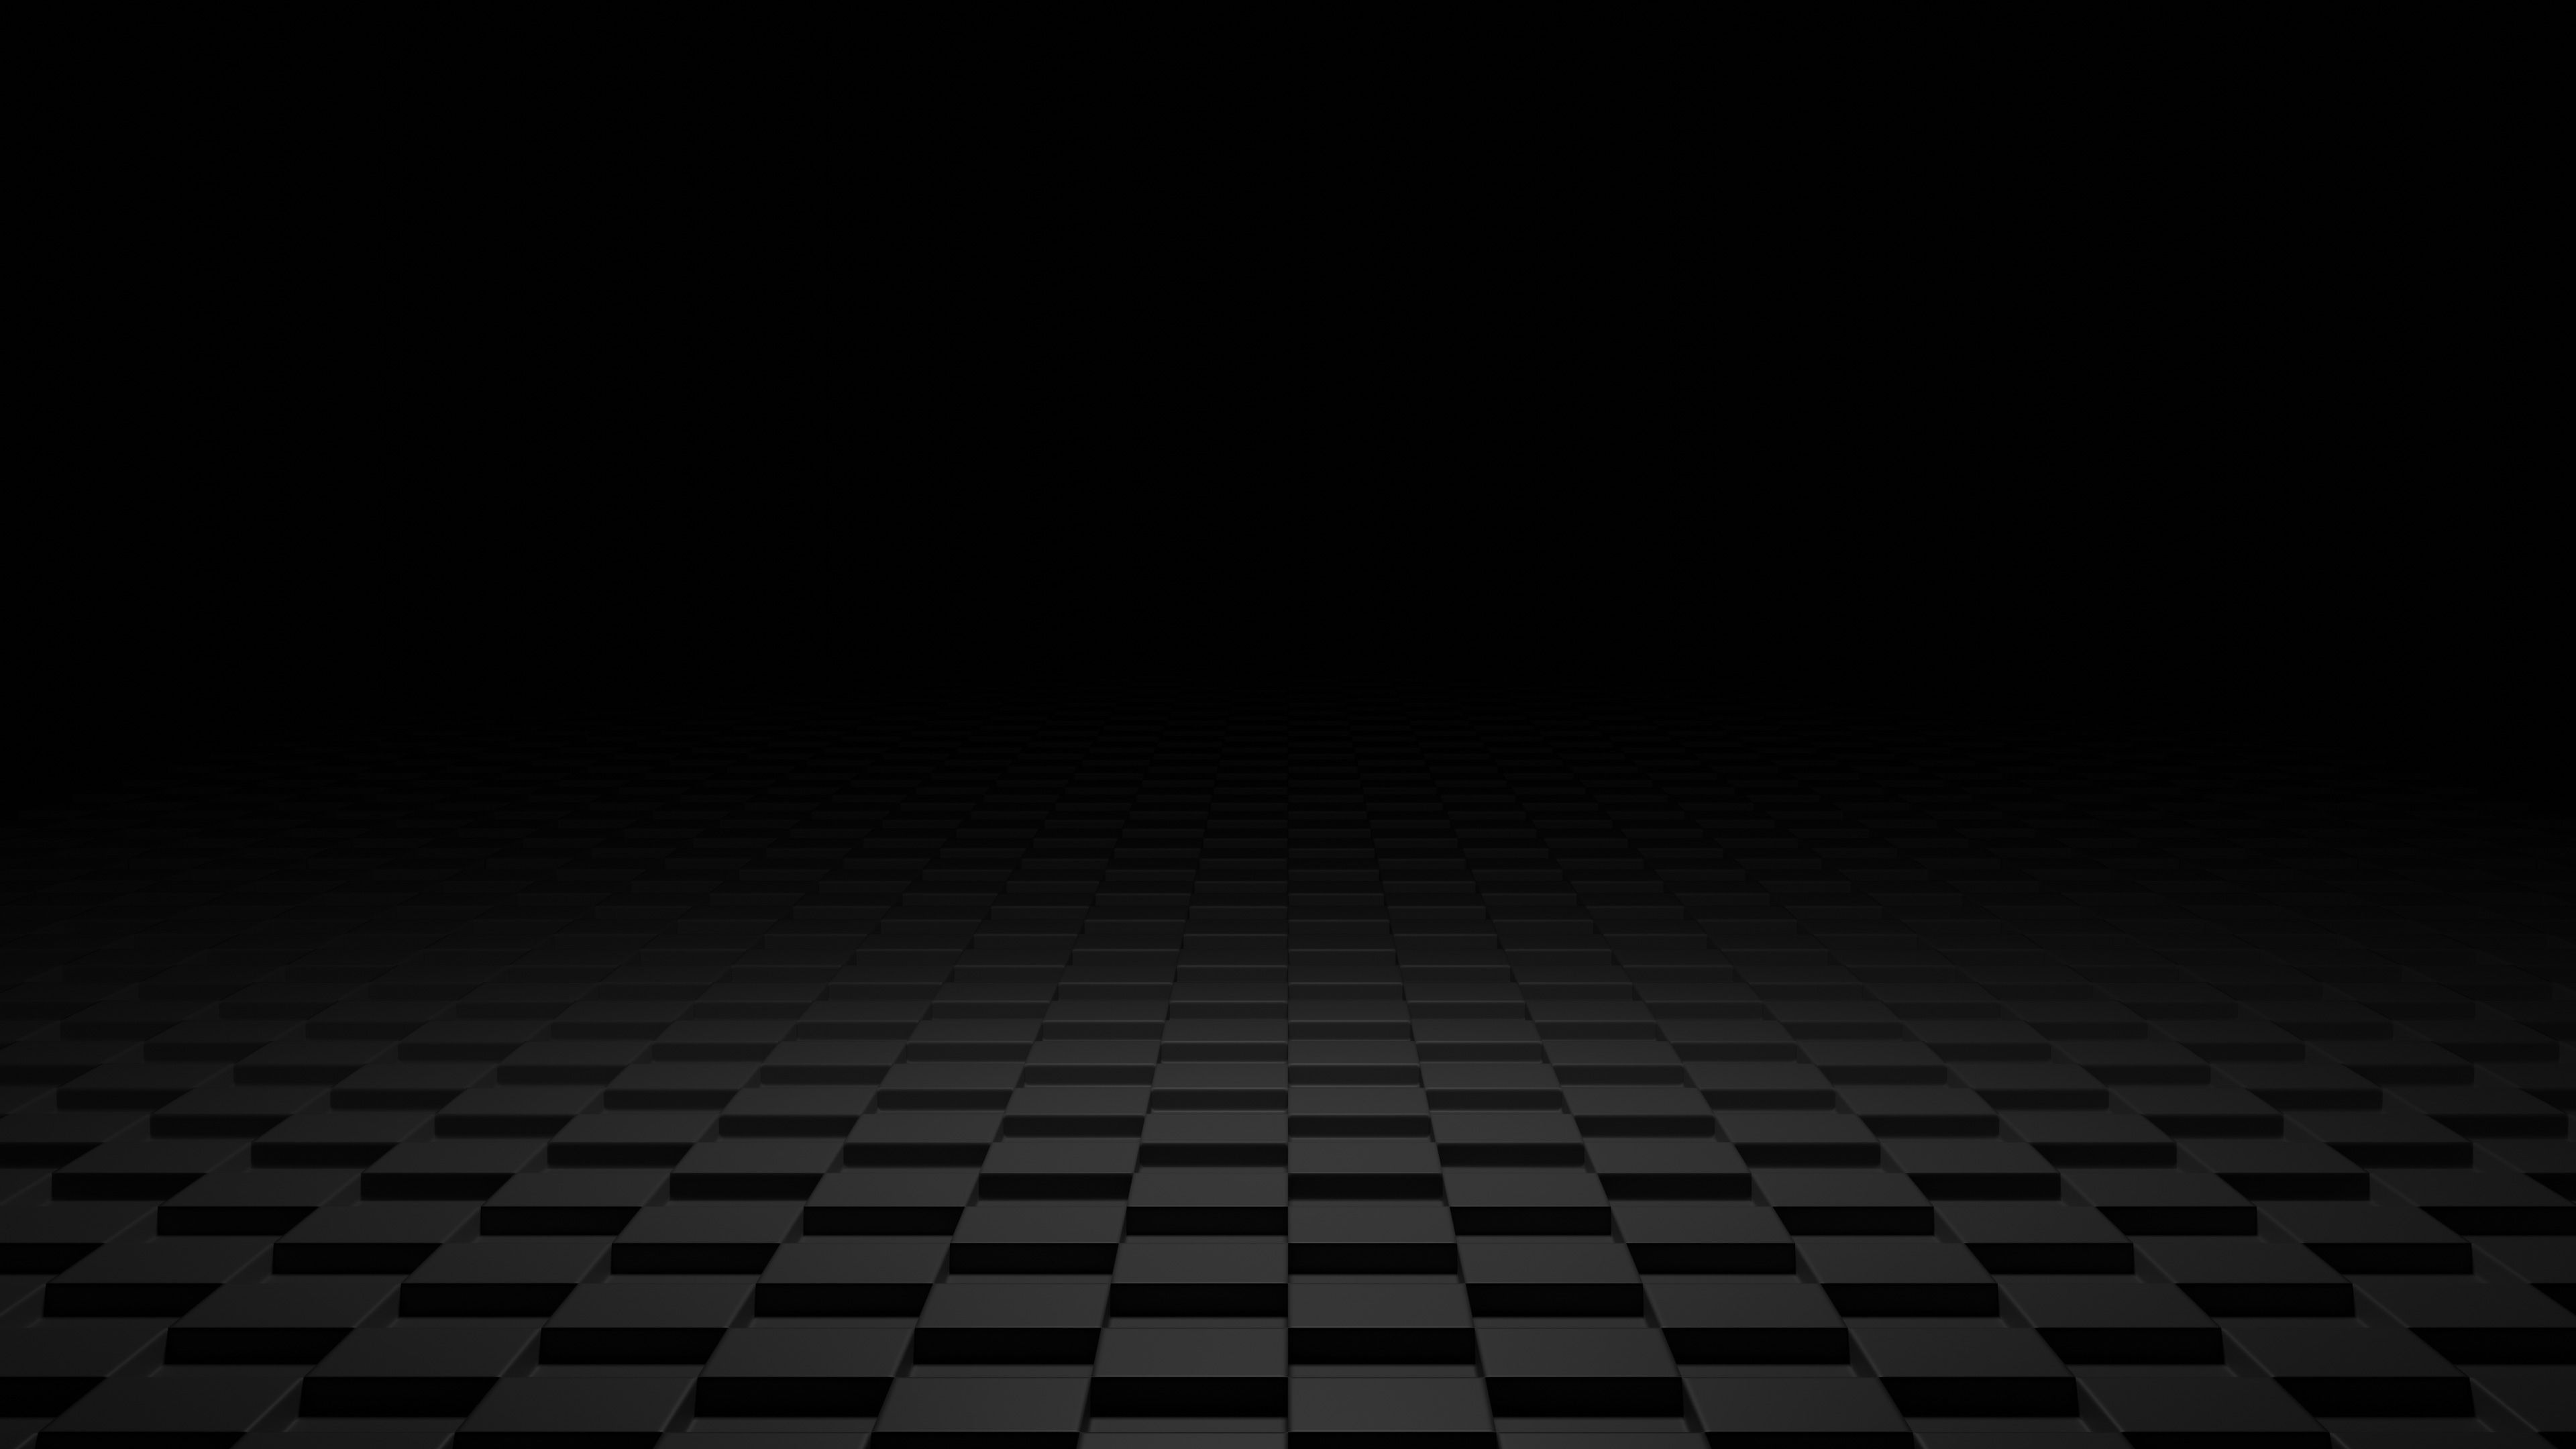 Black 3d Wallpapers Top Free Black 3d Backgrounds Wallpaperaccess